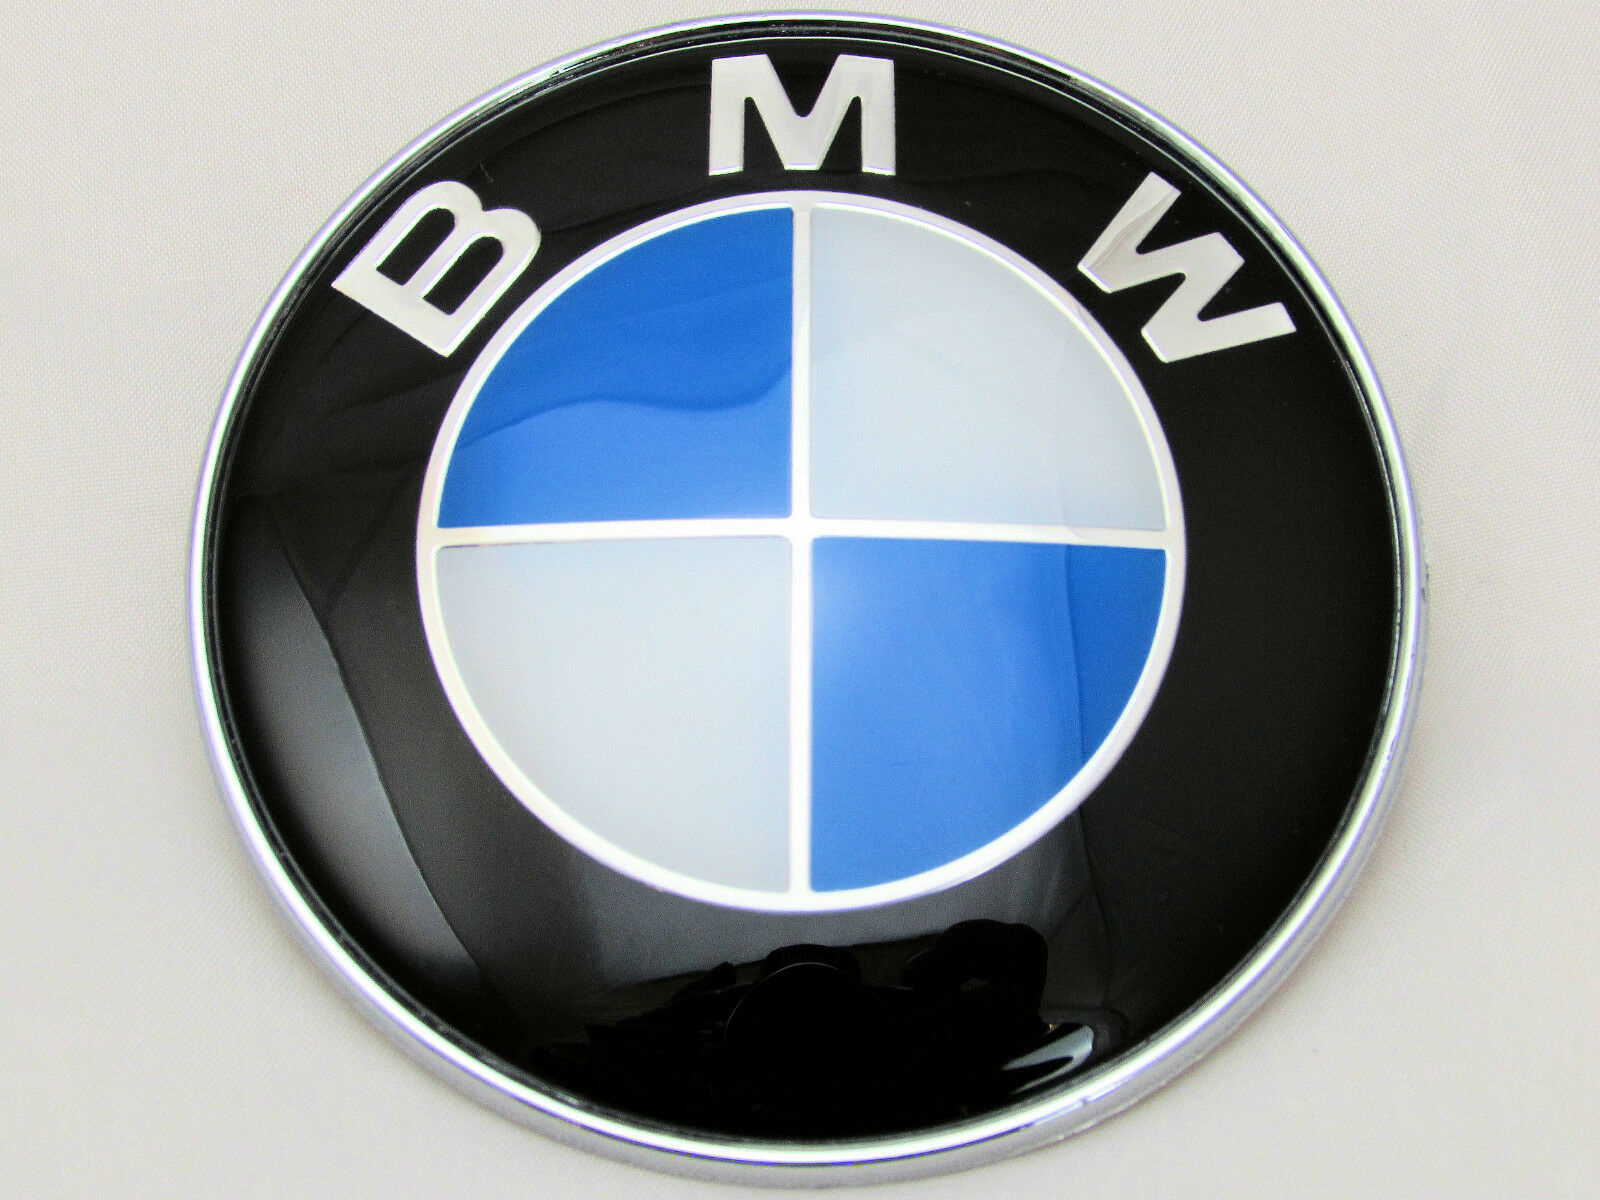 Bmw 1 3 5 7 Z3 Z4 X3 X5 Series Bonnet Badge Front Logo Emblem 82mm Resin Coated 163 9 95